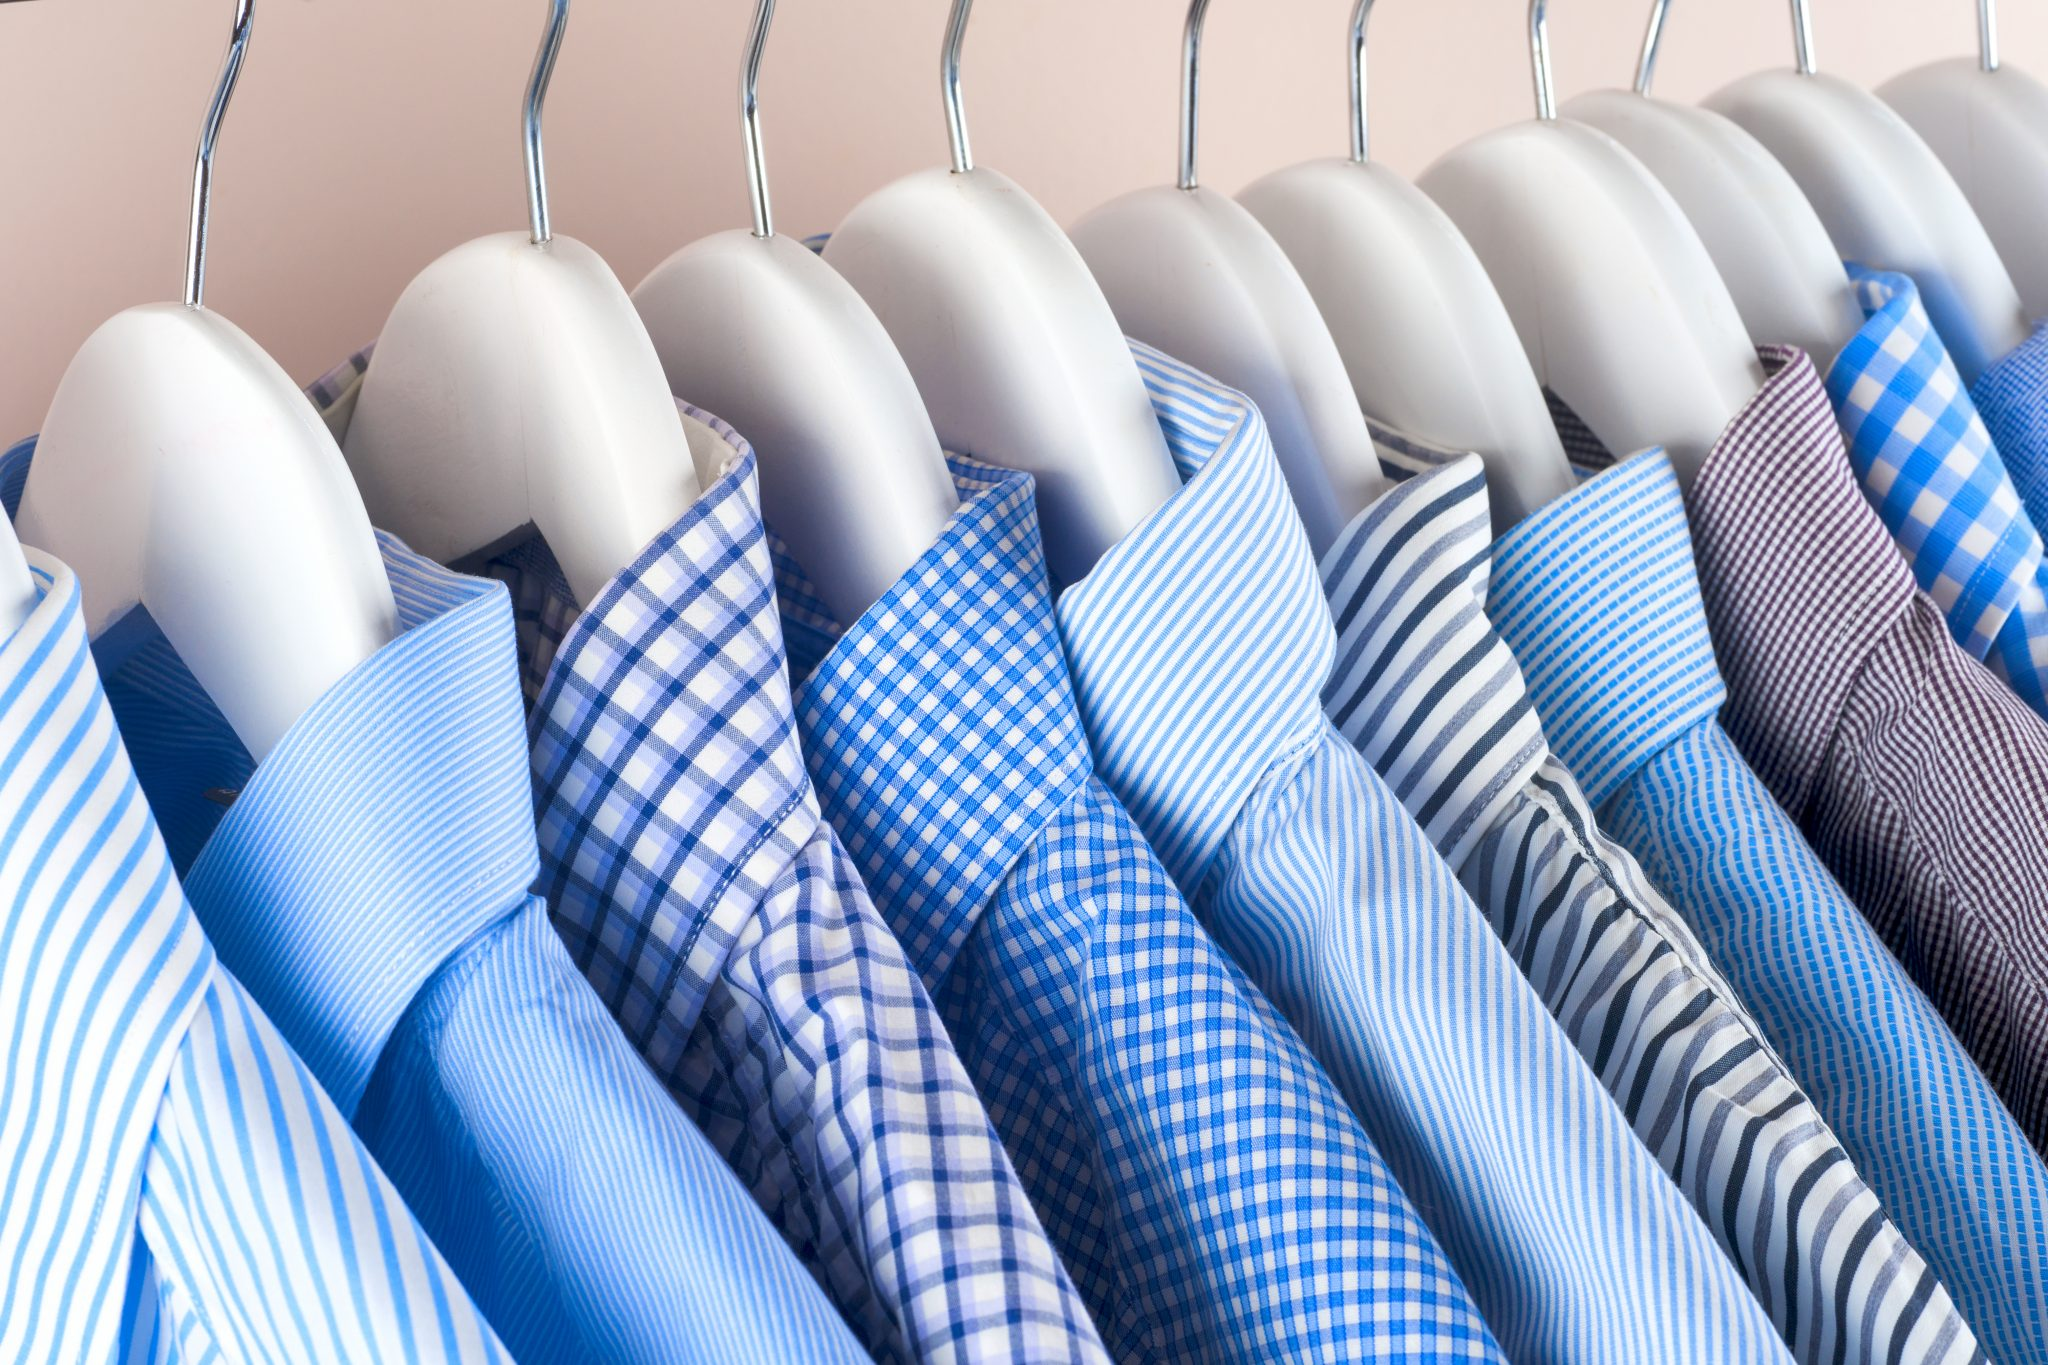 Dry-Cleaning Services in Hyderabad